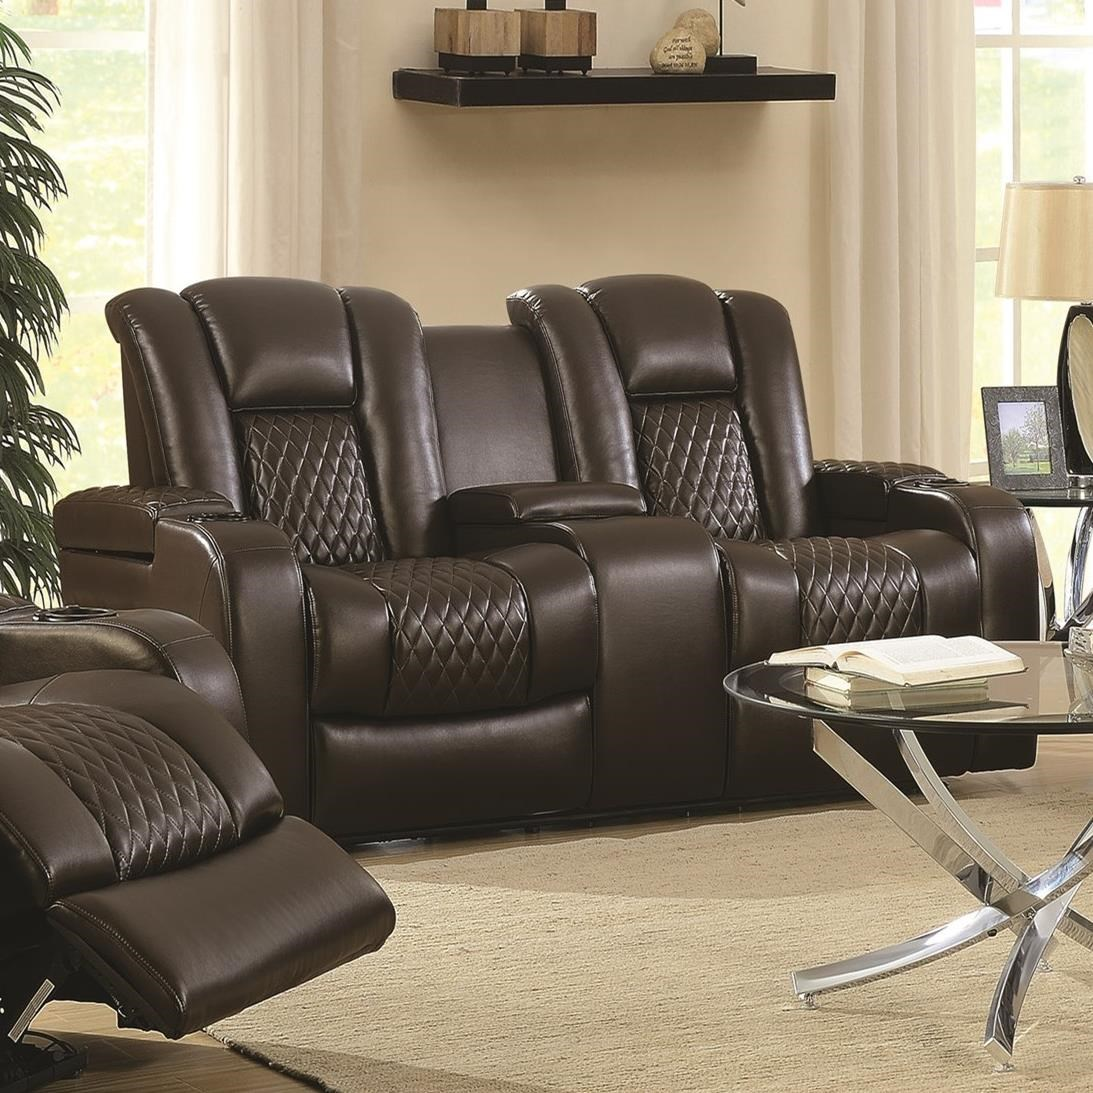 Coaster Delangelo 602305p Casual Power Reclining Love Seat